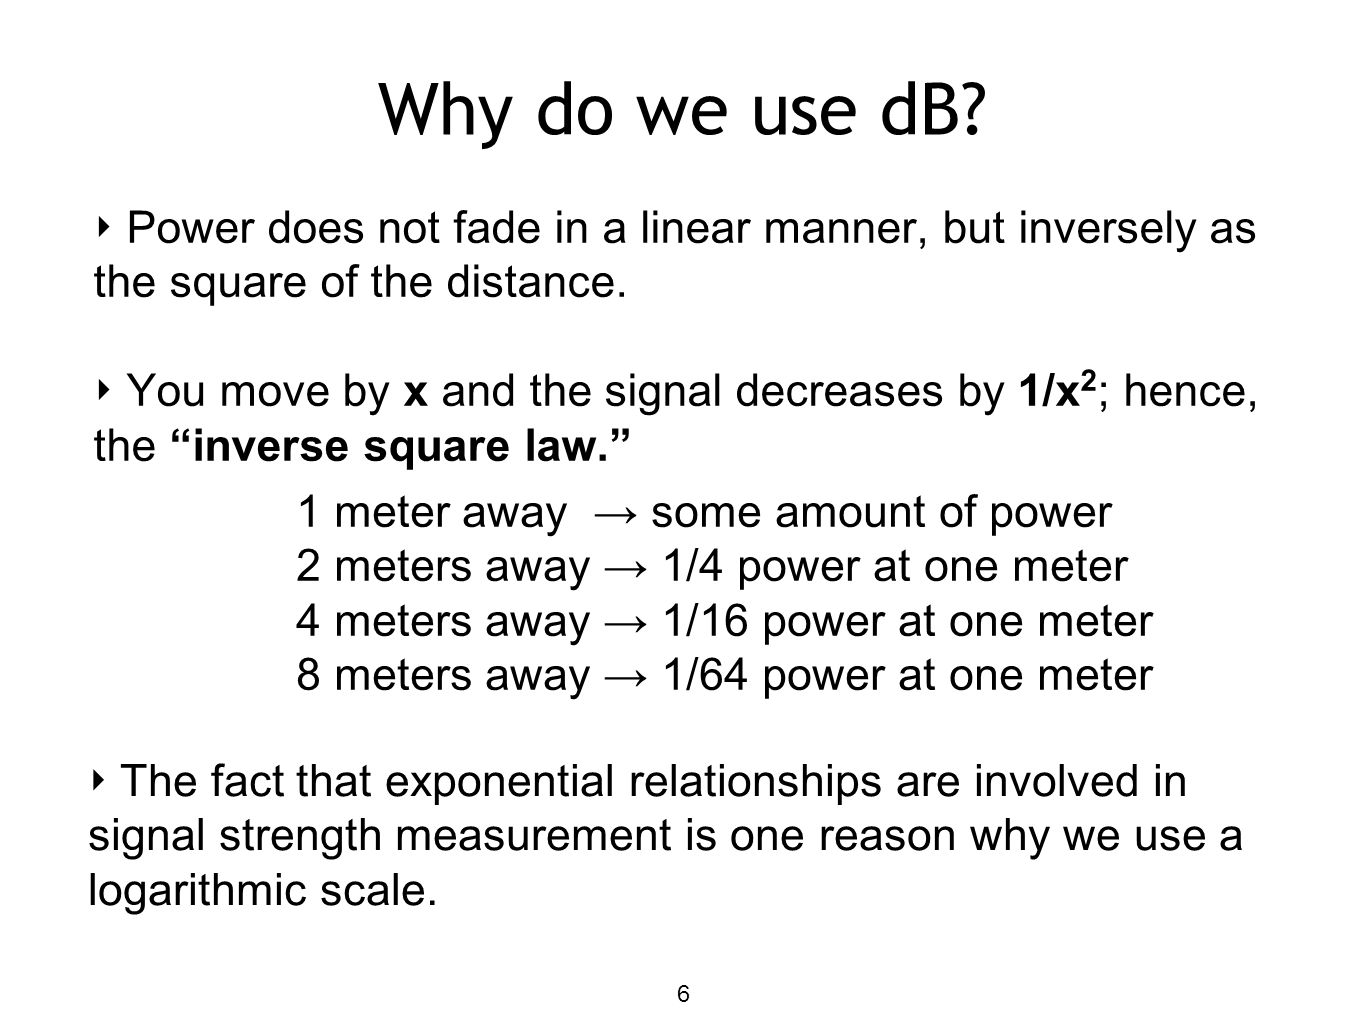 Why do we use dB Power does not fade in a linear manner, but inversely as the square of the distance.